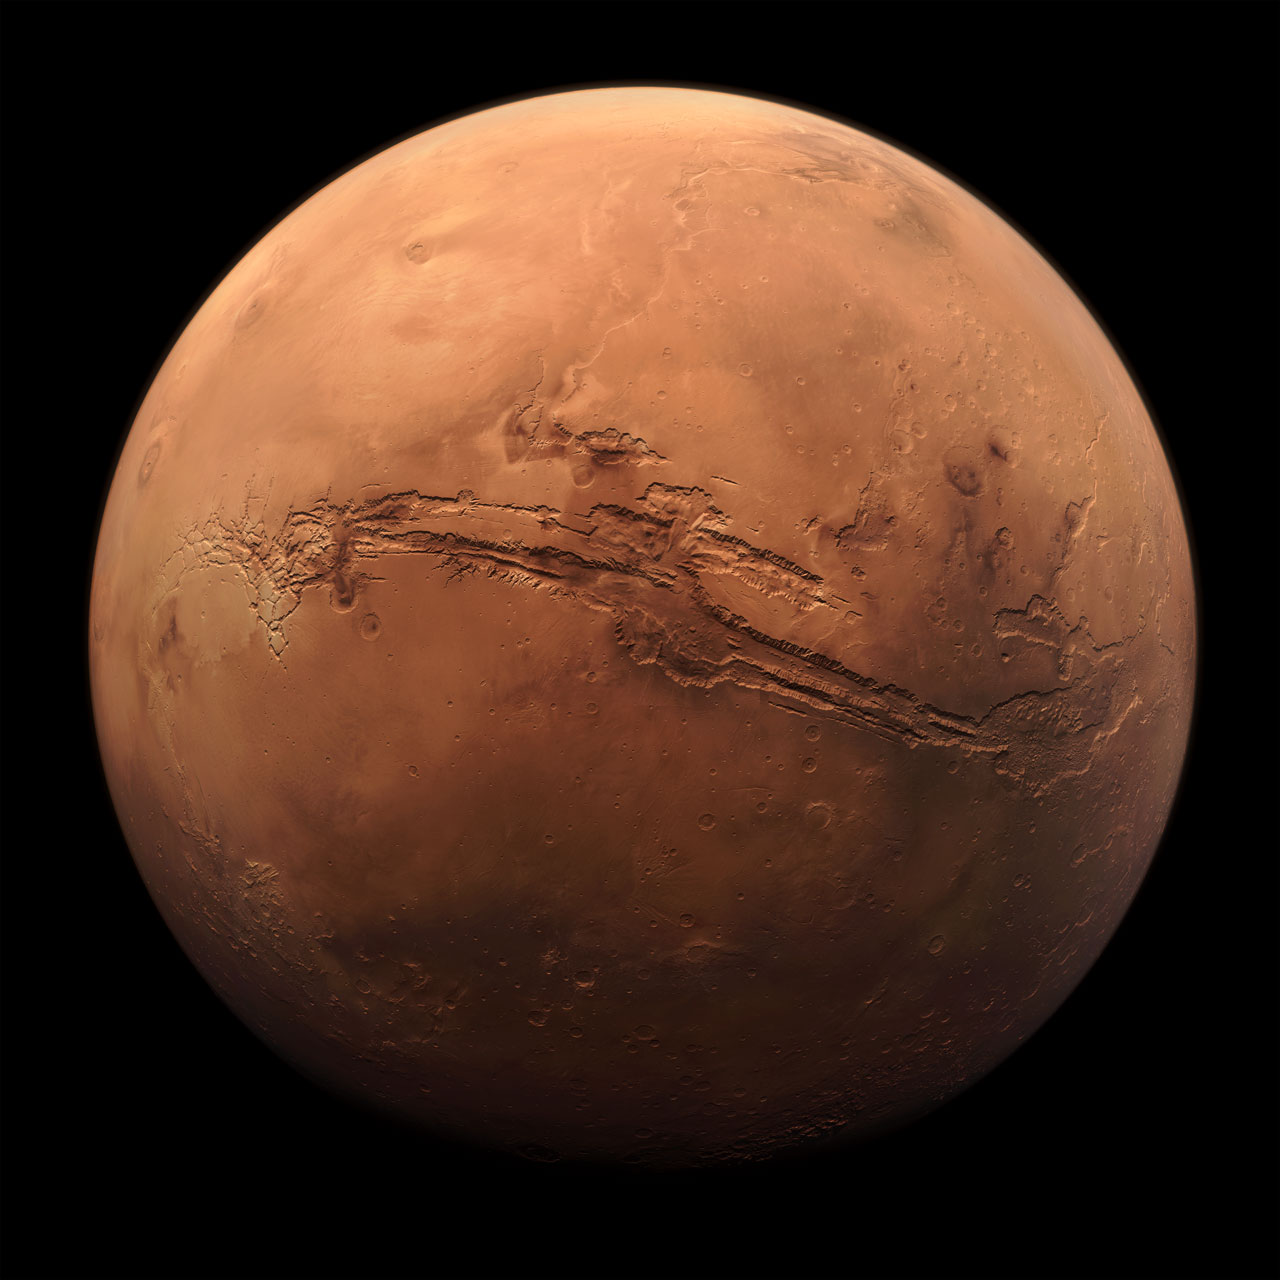 Planet Mars showing Valles Marineris